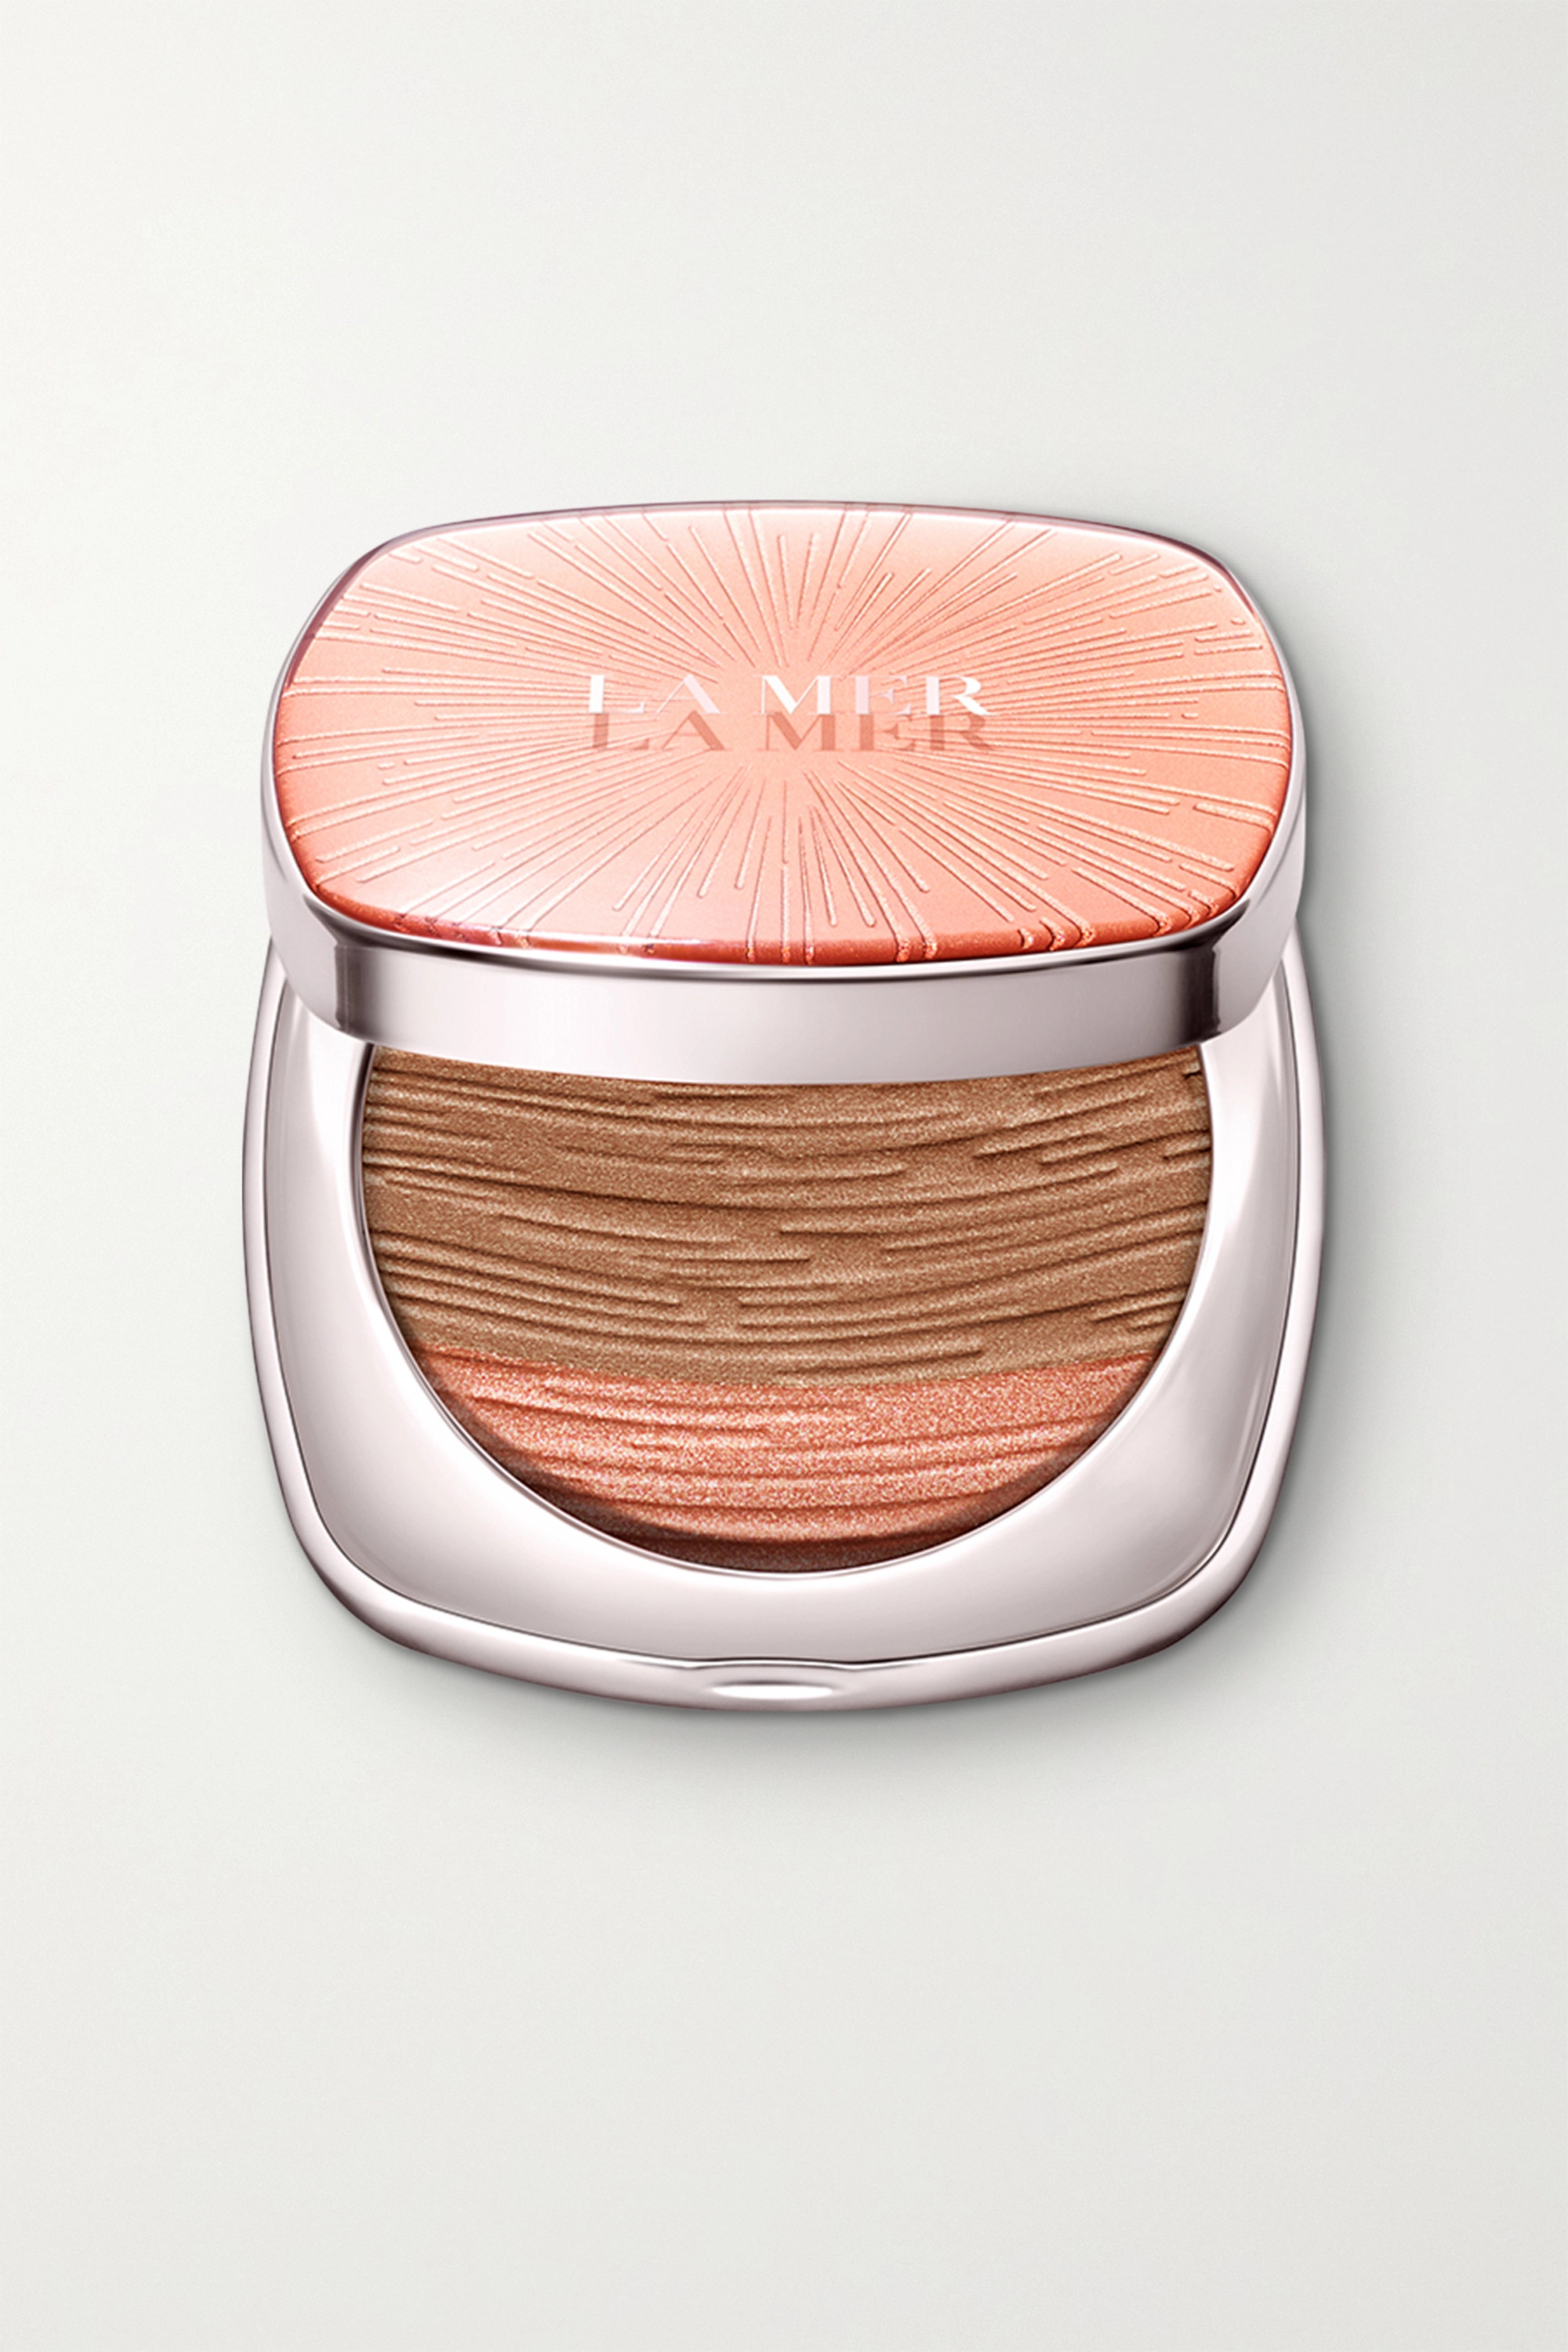 LA MER The Bronzing Powder, 14.5g